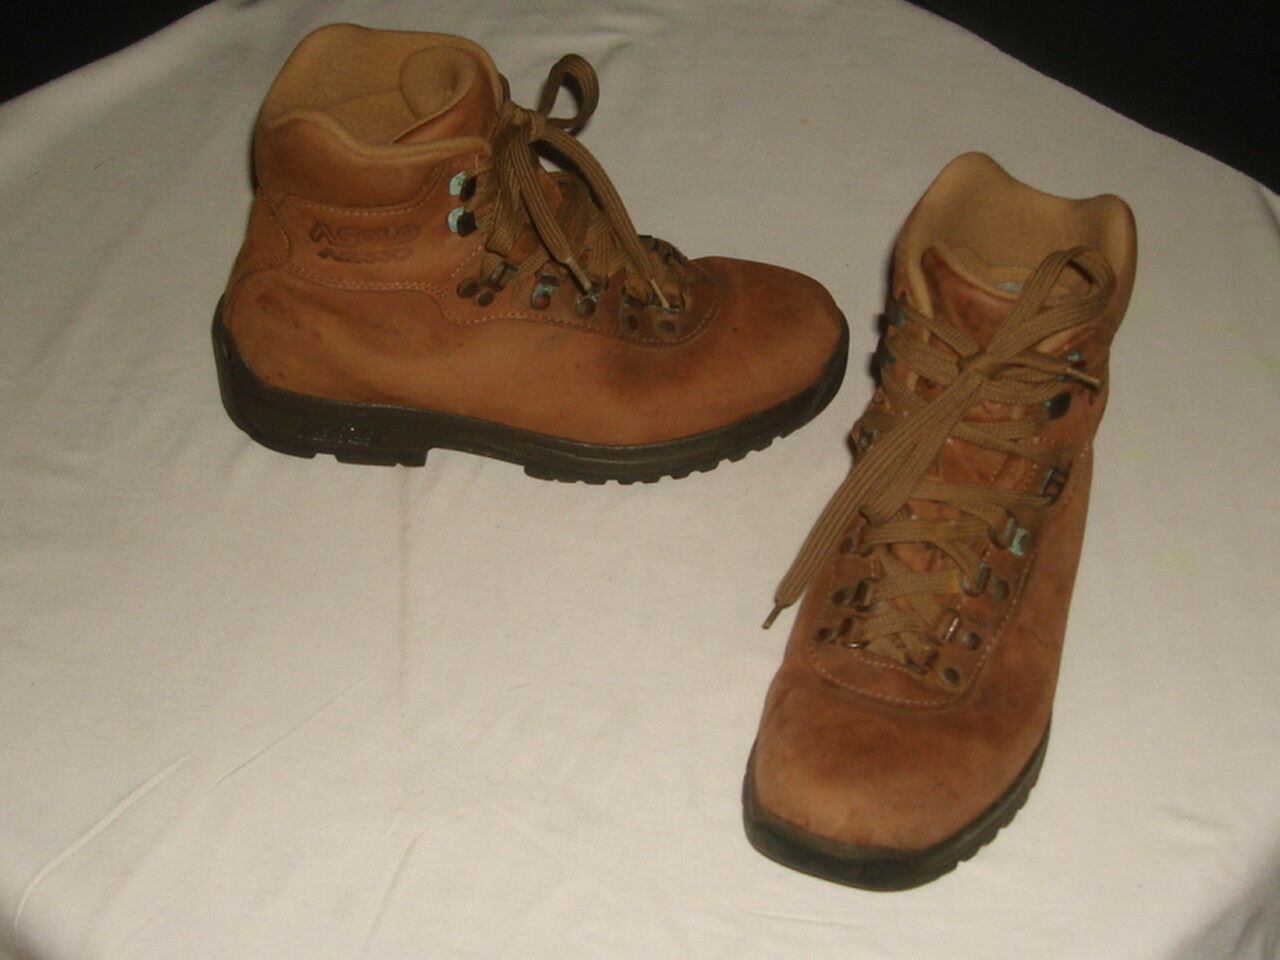 ASOLO AFX 530 WOMEN'S  BROWN LEATHER ANKLE TRAIL  HIKING BOOTS SZ. 6.5 us  38 eur  hot sales